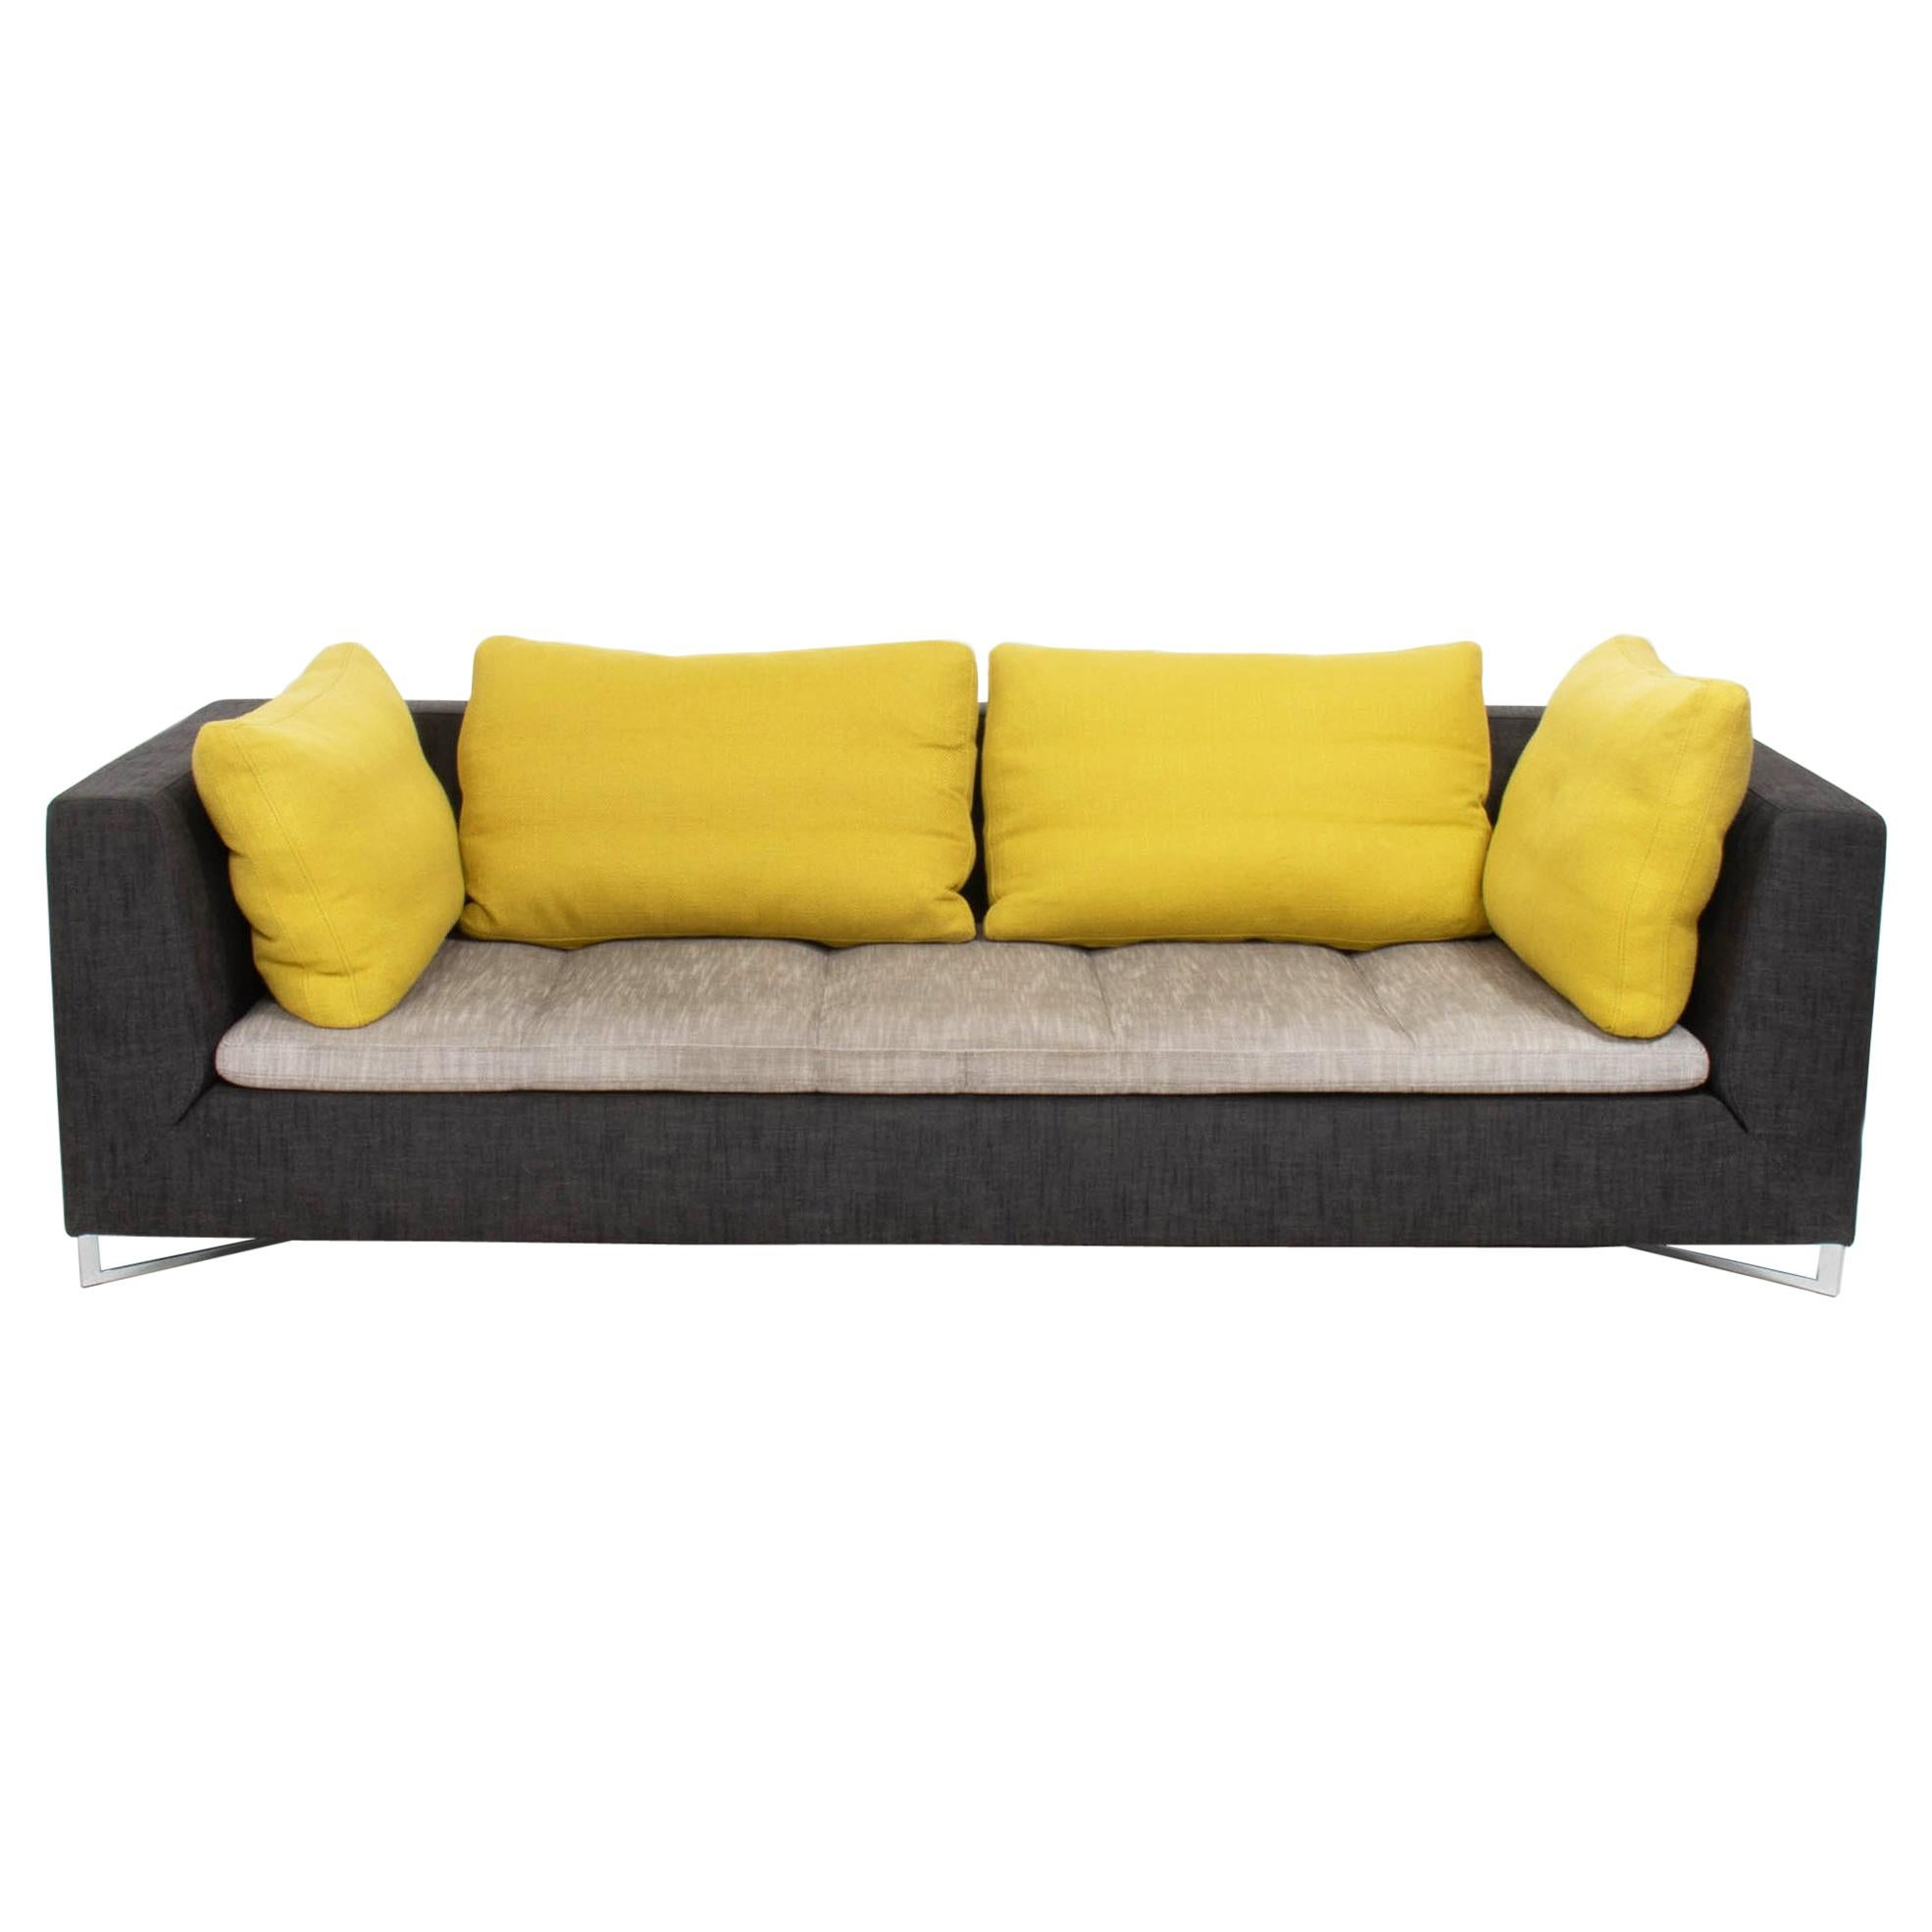 Ligne Roset by Didier Gomez Feng Grey and Yellow Three-Seat Feng Sofa, 2004